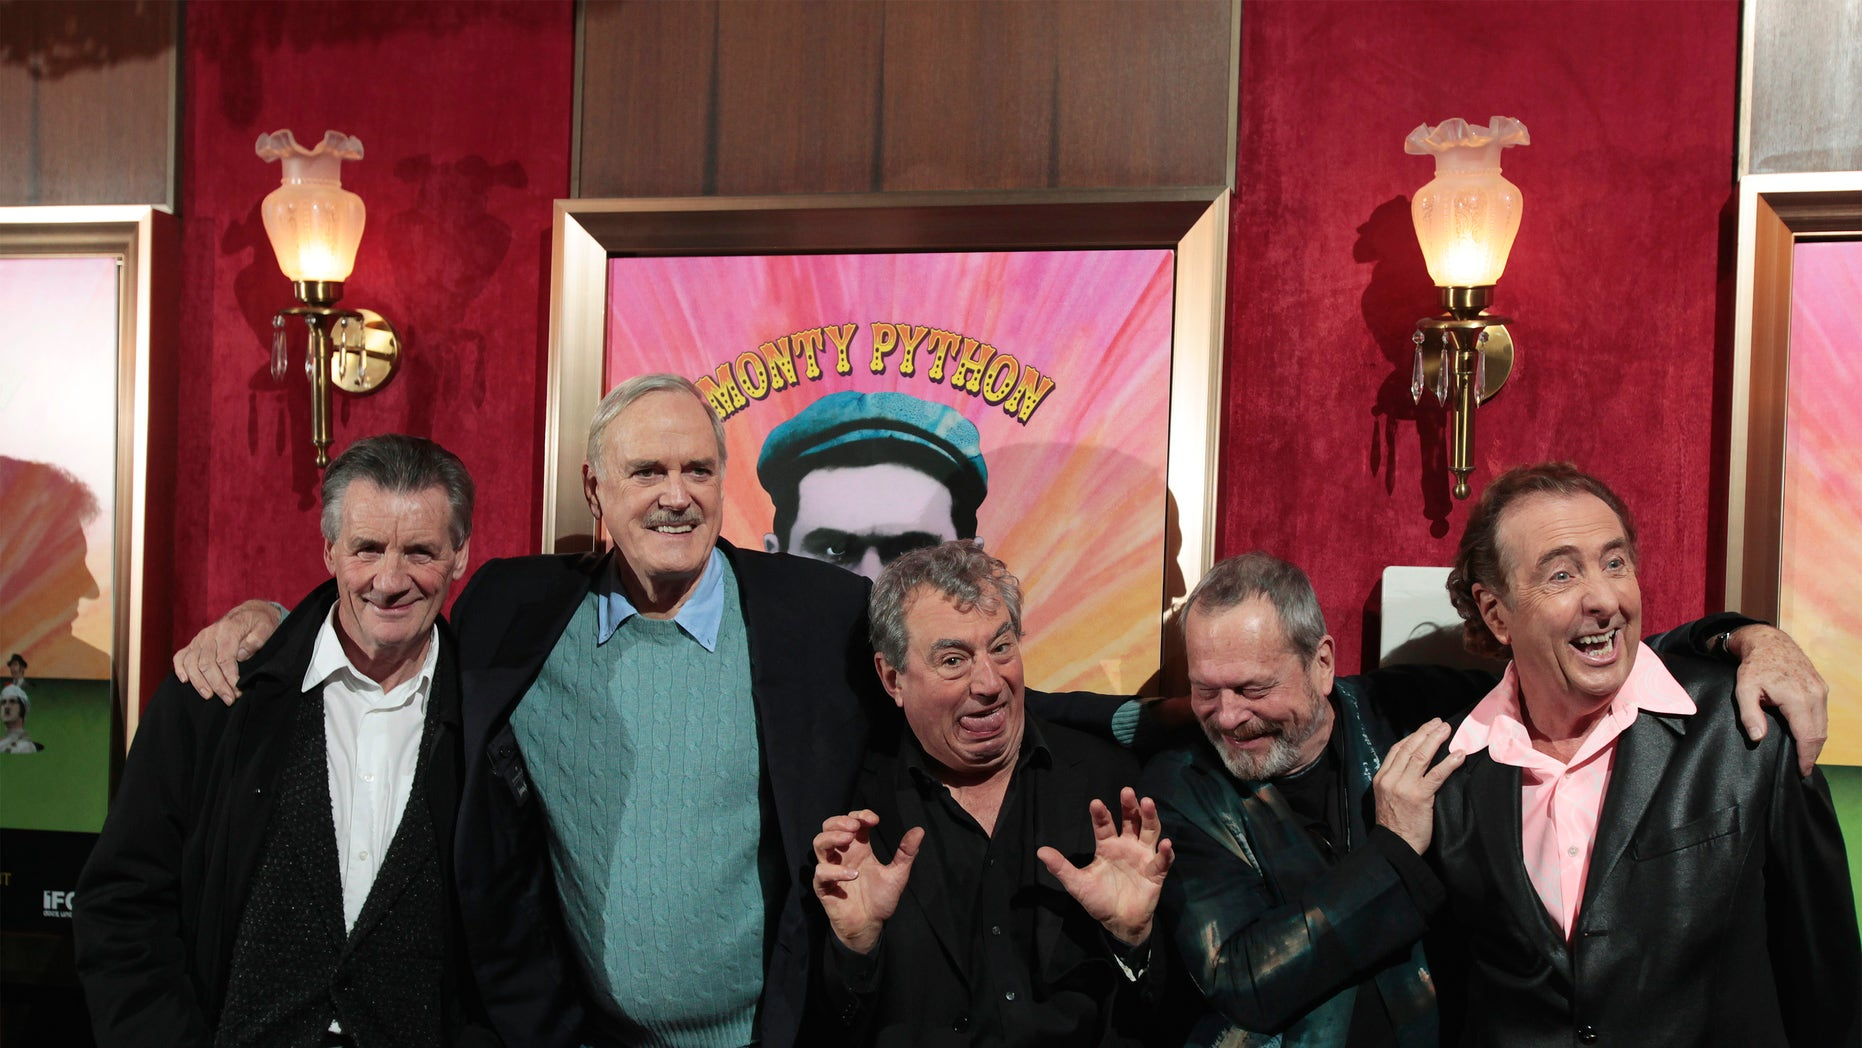 "(Left to right) The original cast of the Monty Python troupe Michael Palin, John Cleese, Terry Jones, Terry Gilliam and Eric Idle smile as they arrive at the premiere of the documentary ""Monty Python: Almost The Truth (Lawyer's Cut)"" celebrating the troupe's 40th anniversary, in New York October 15, 2009."